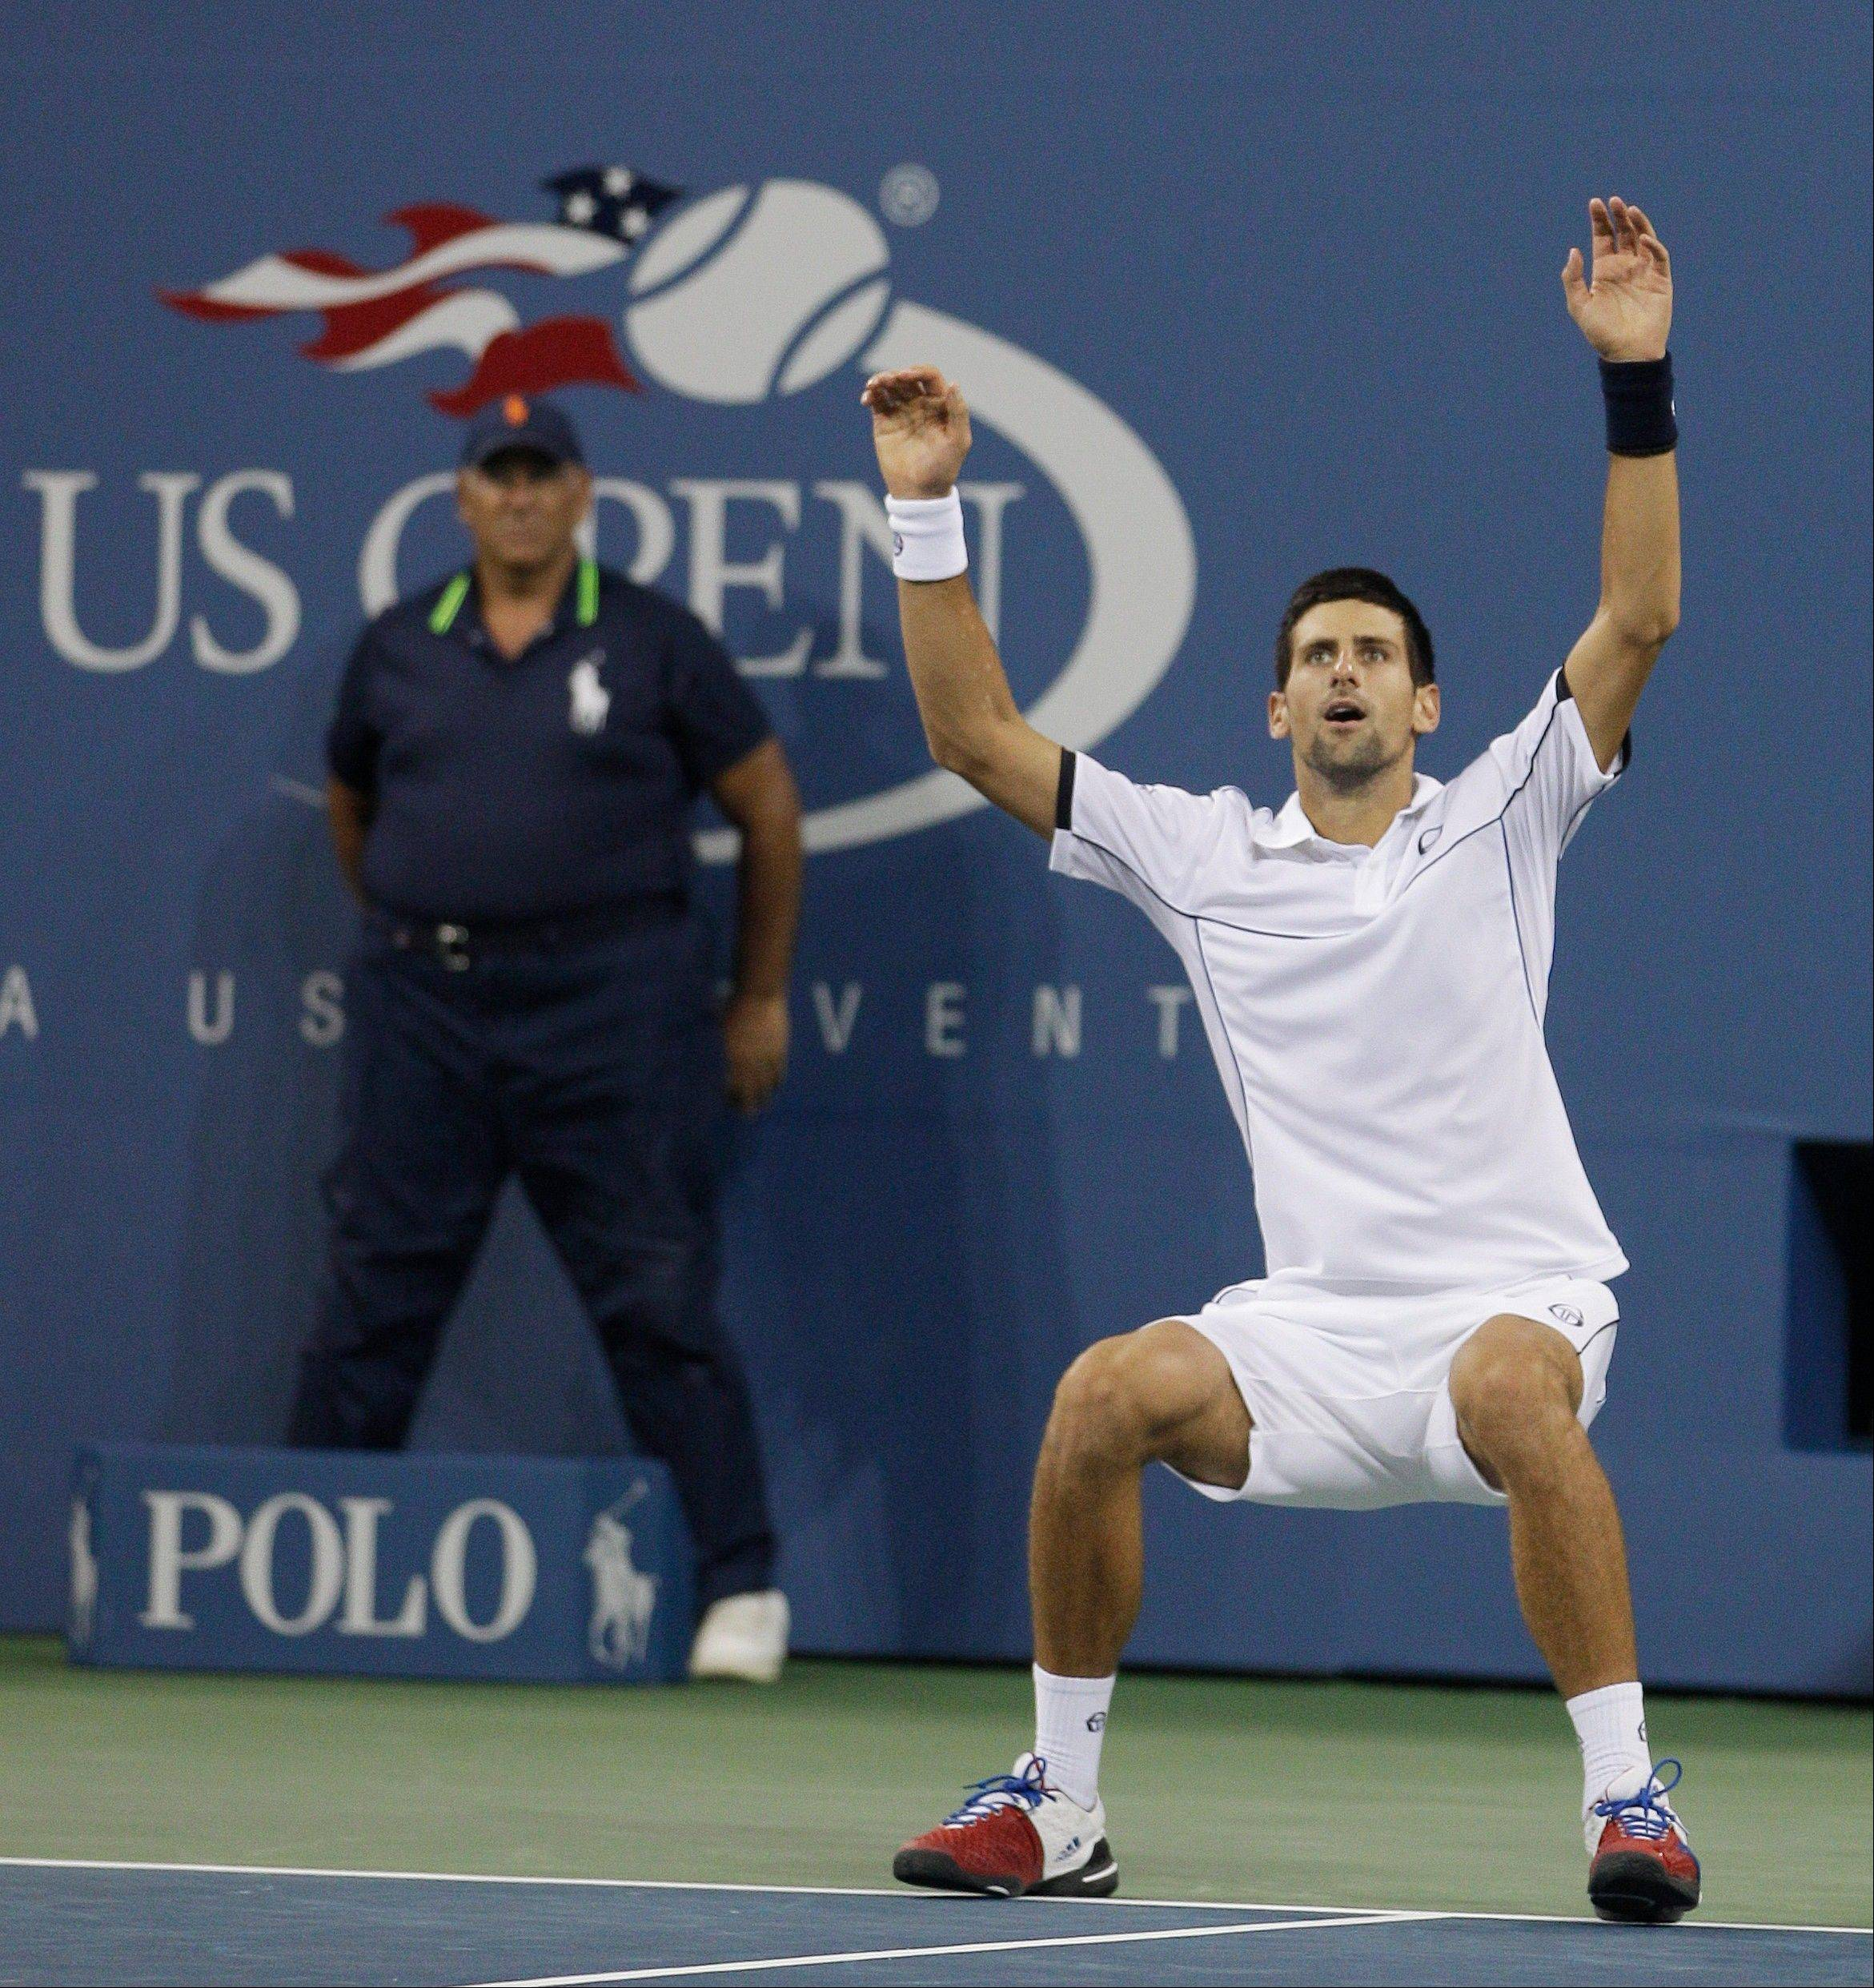 Novak Djokovic reacts Monday after winning the U.S. Open.